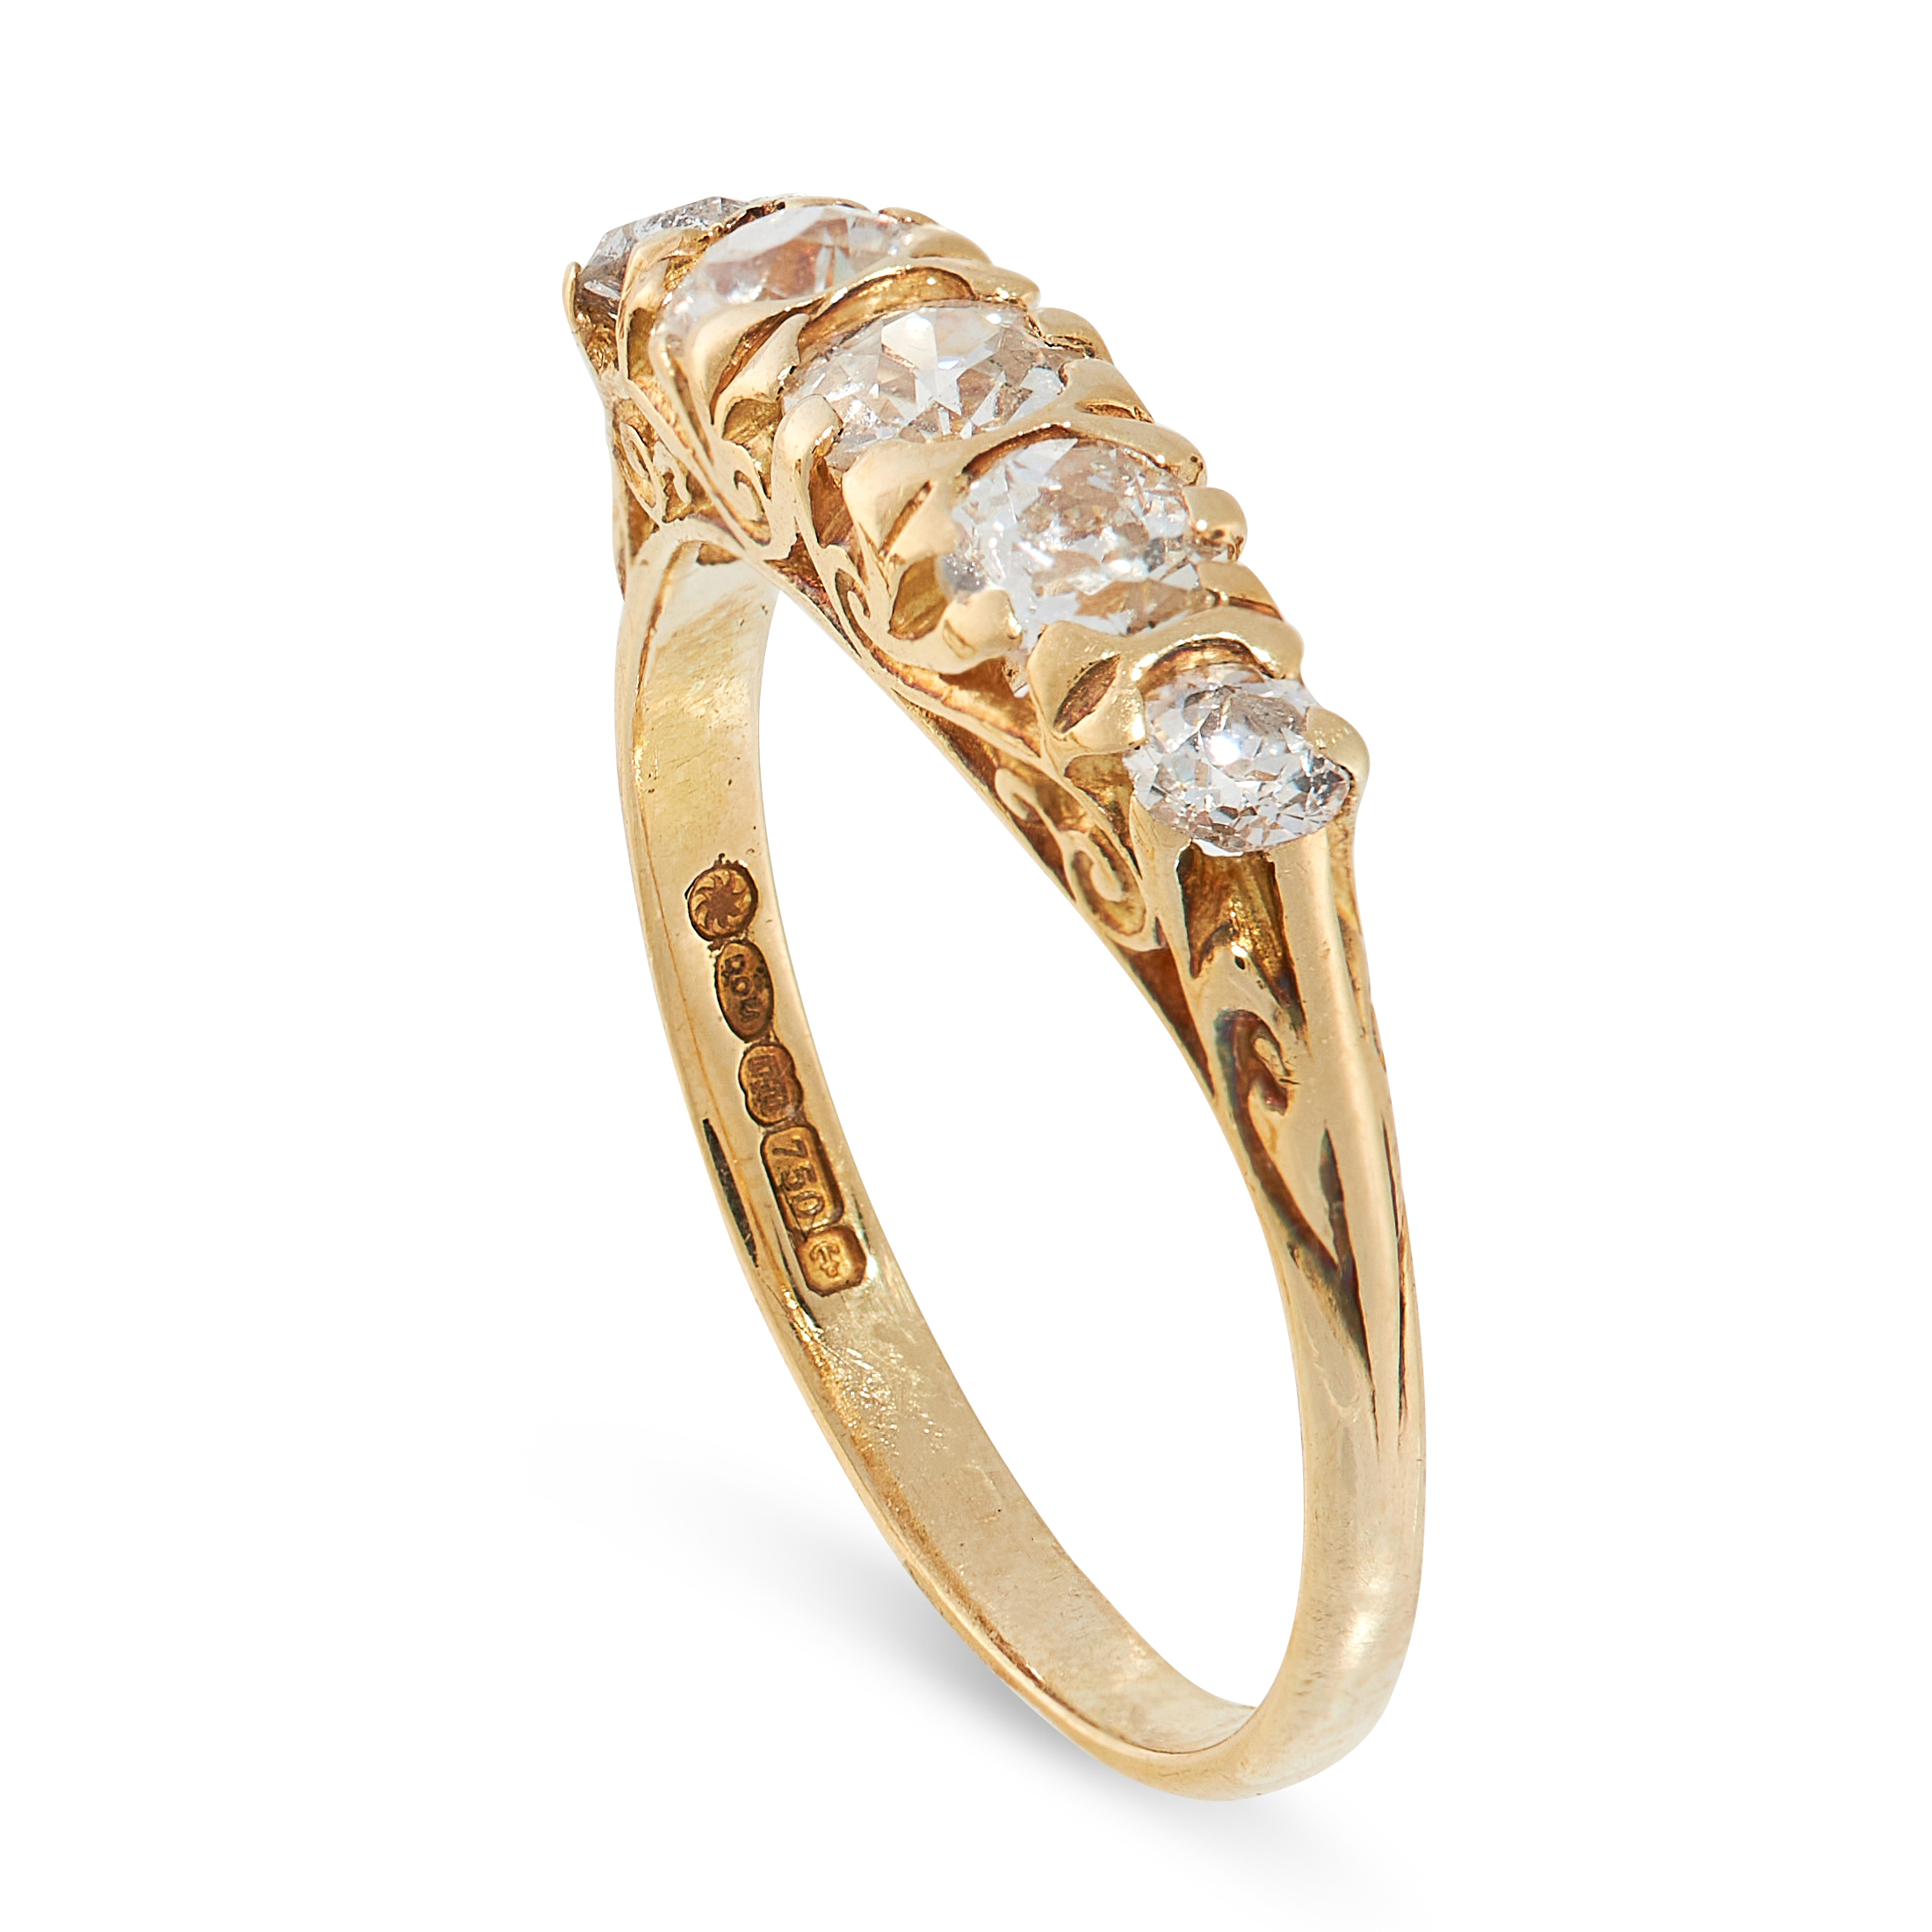 A DIAMOND FIVE STONE RING in 18ct yellow gold, set with five graduated old cut diamonds, British - Image 2 of 2